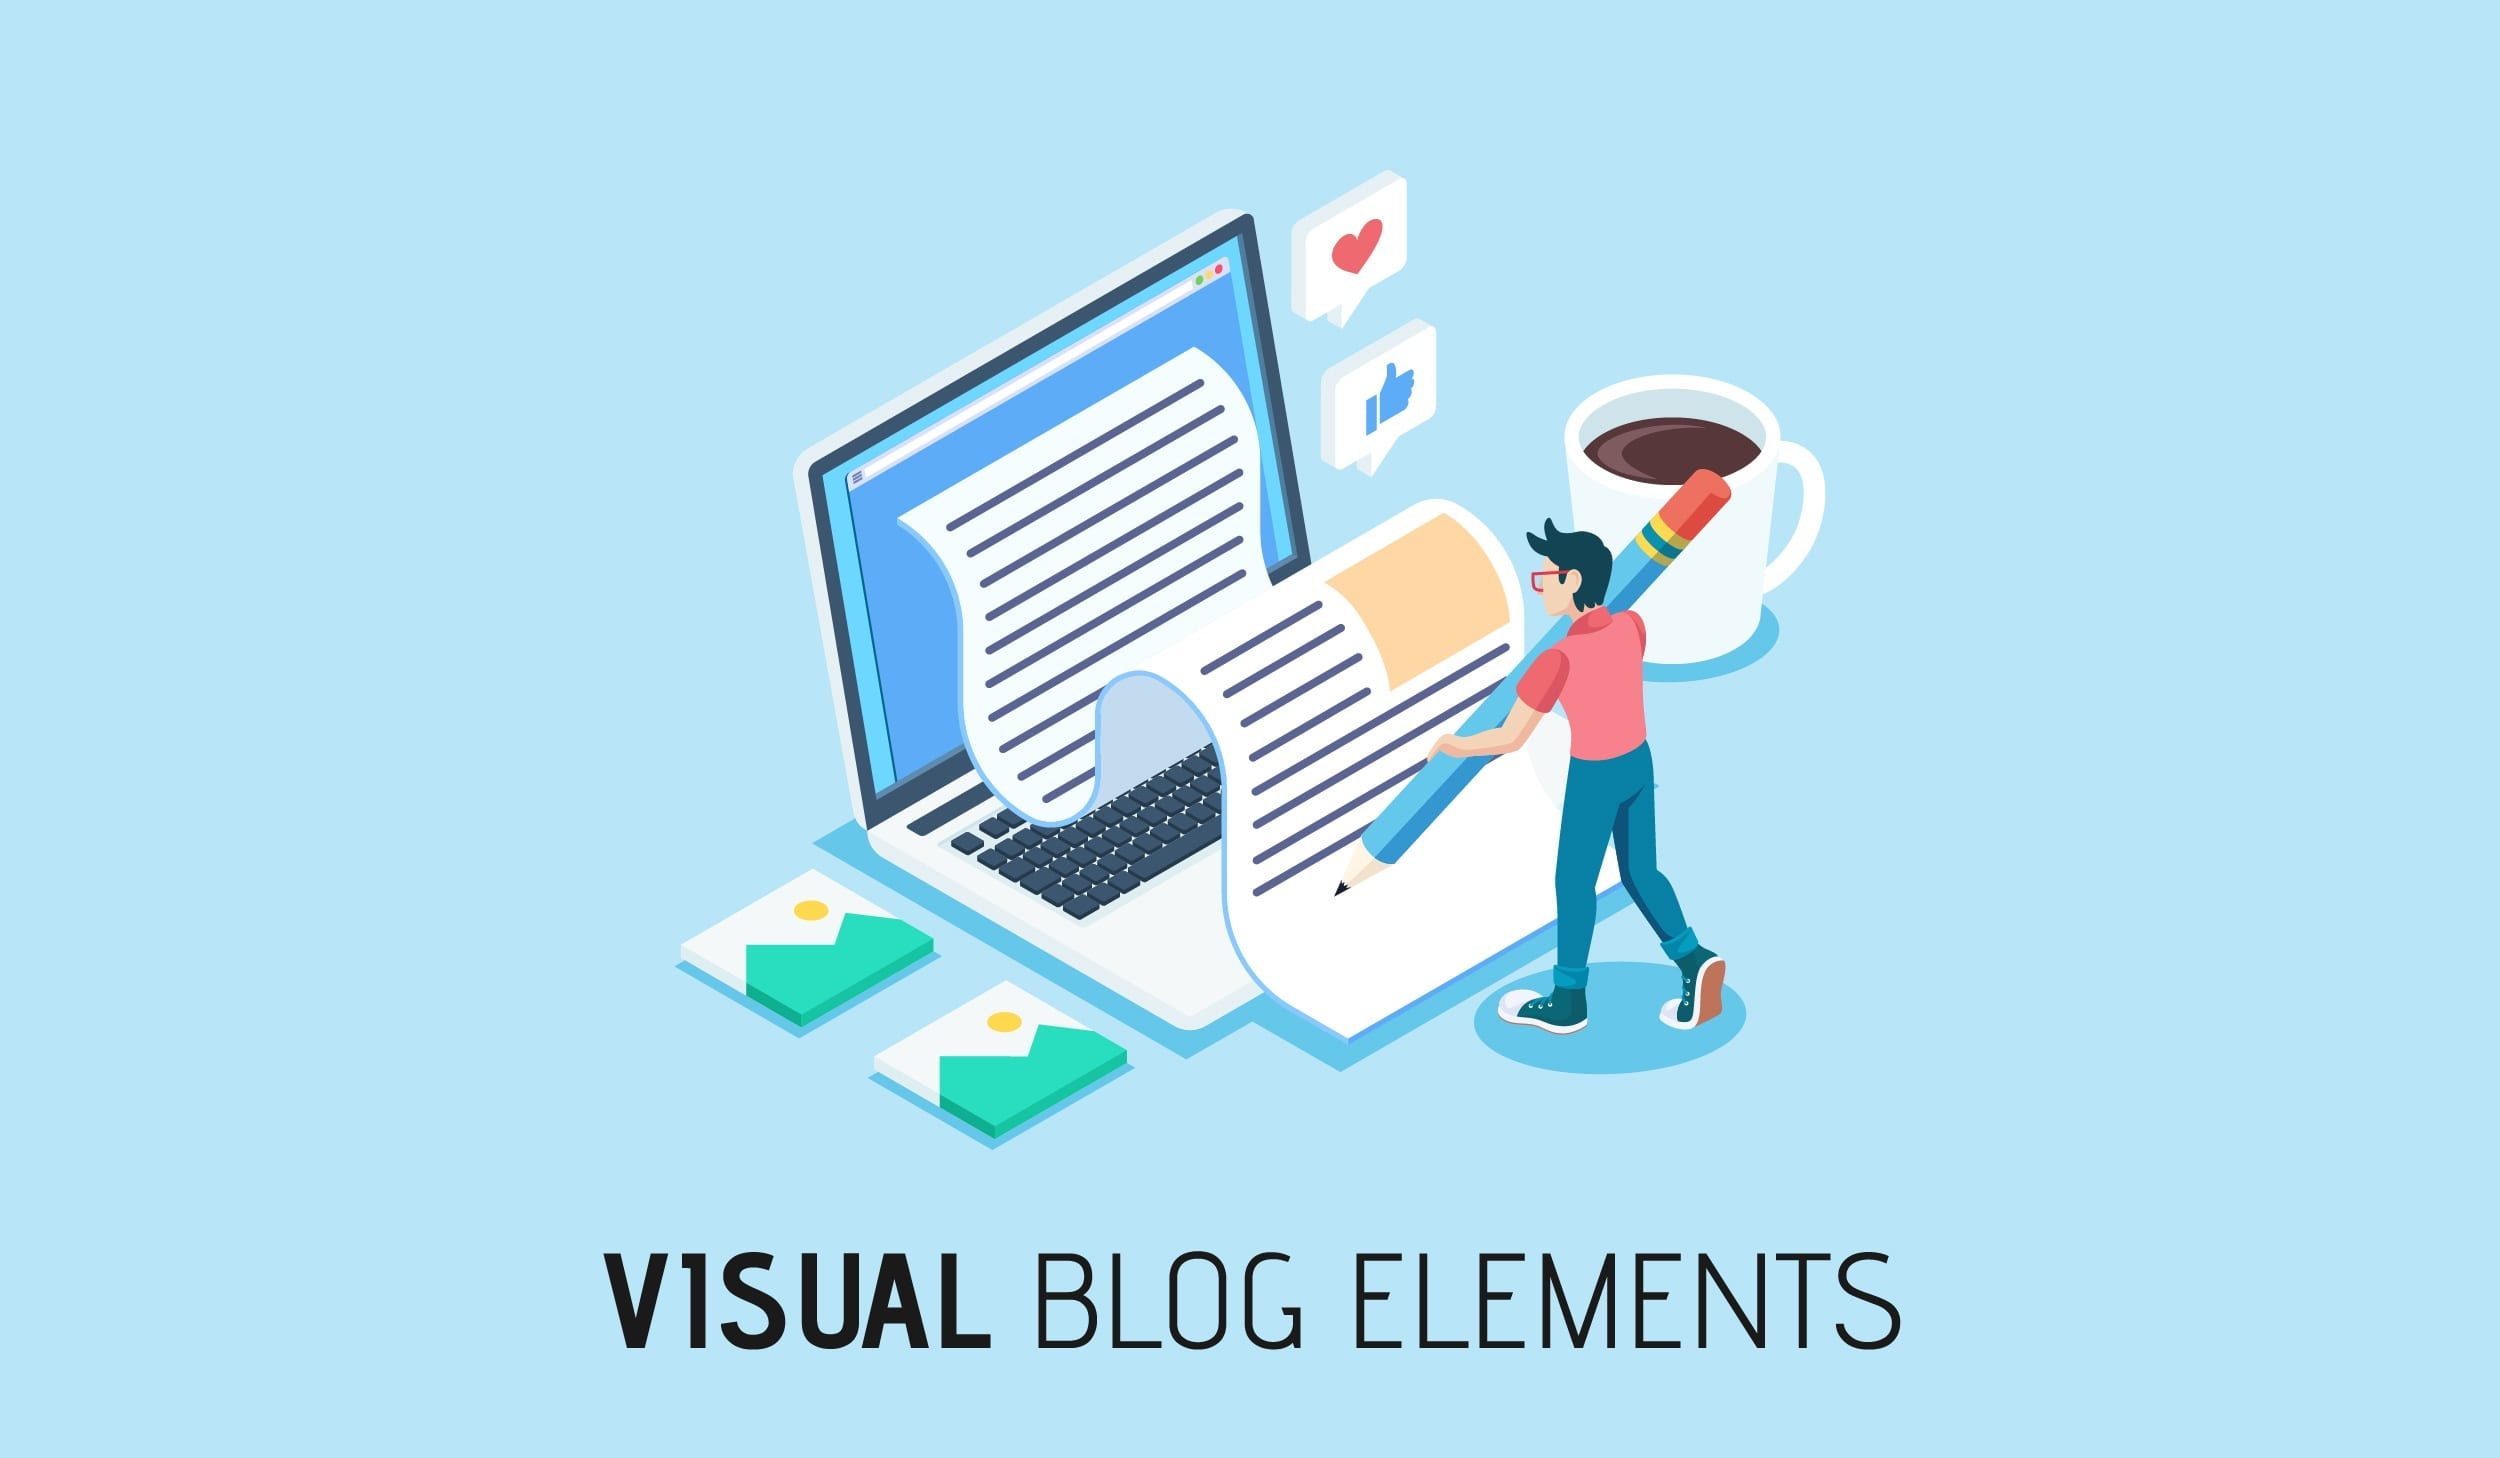 Improving the visual elements of a blog post.